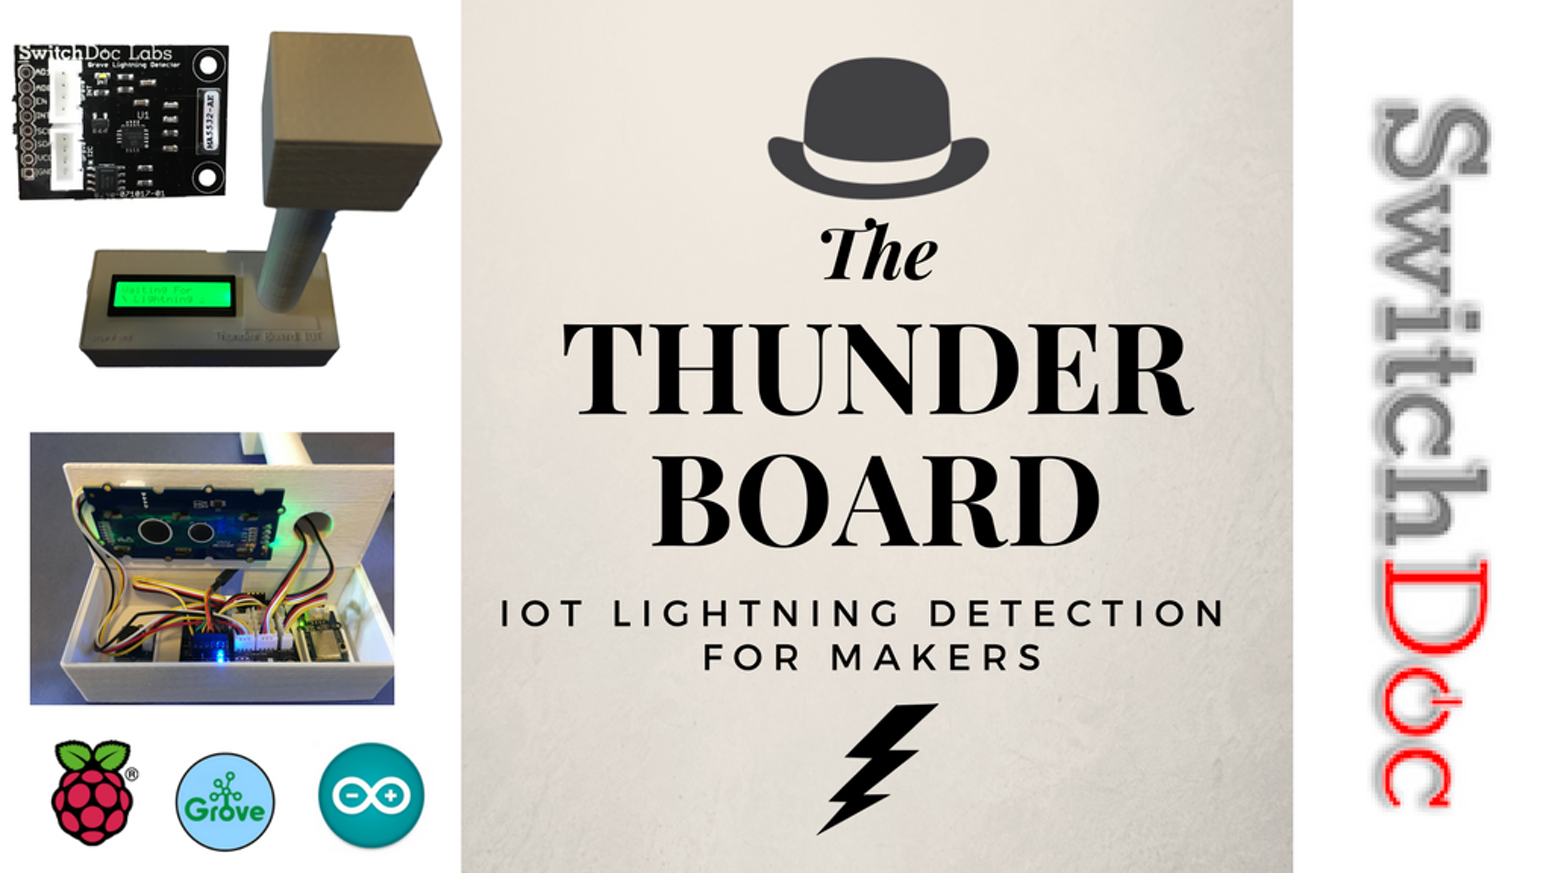 The Thunder Board Iot Lightning Detection For Makers By Switchdoc How To Build Rain Detector Detect Lighting On Your Raspberry Pi Or Arduino System Diy